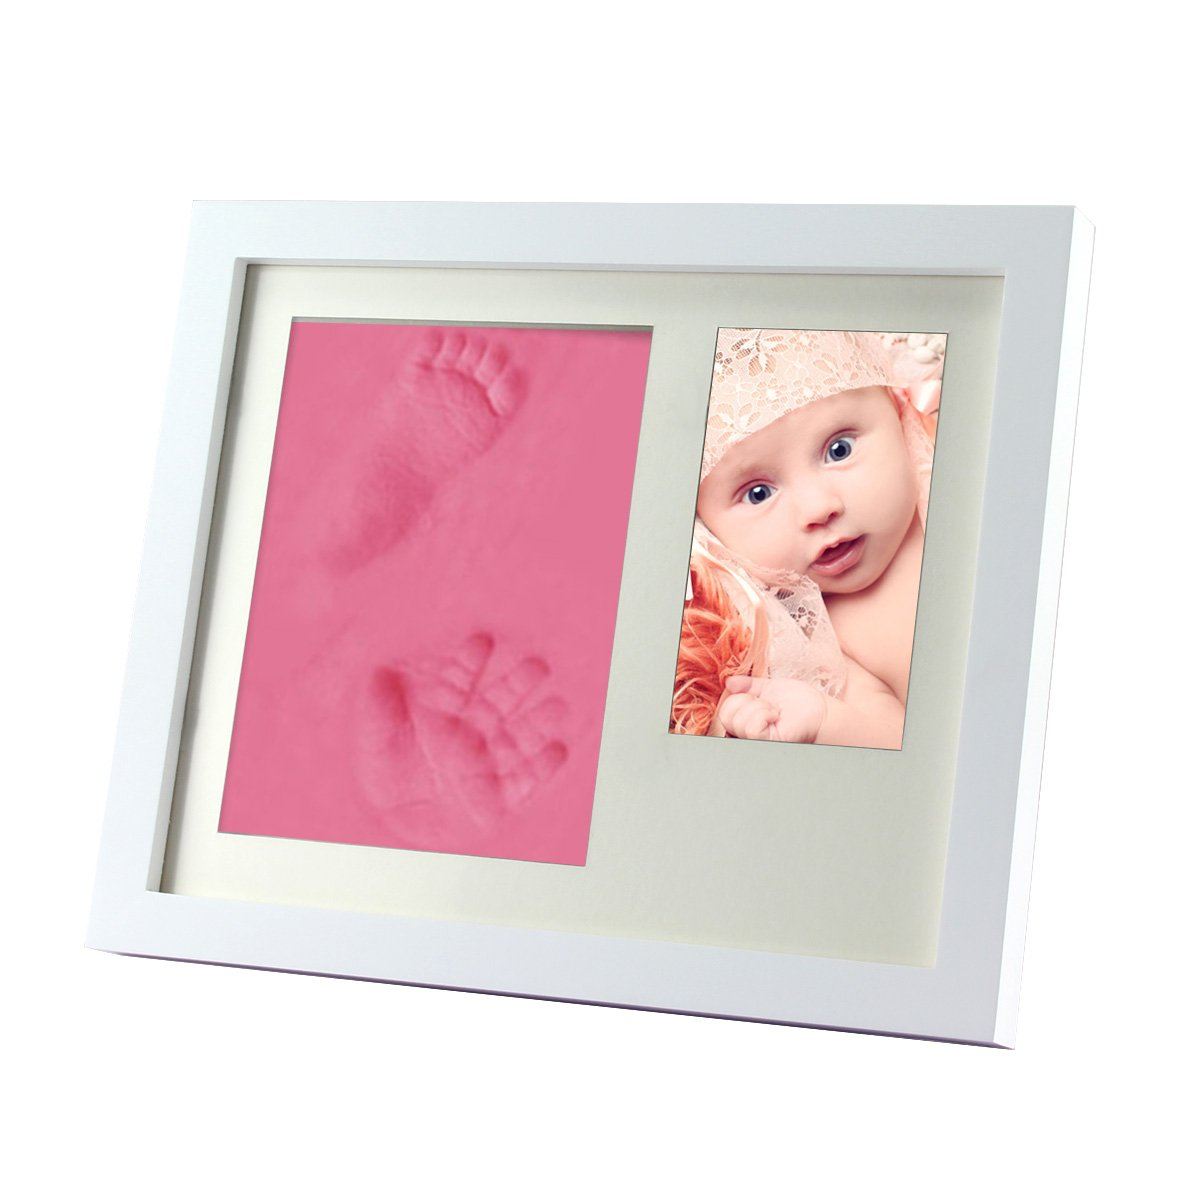 Gembaby Charming Baby Handprint & Footprint Desktop Picture Frame Package, Non Toxic and Child Safe Clay, Unique Gift Idea and Keepsake (White)